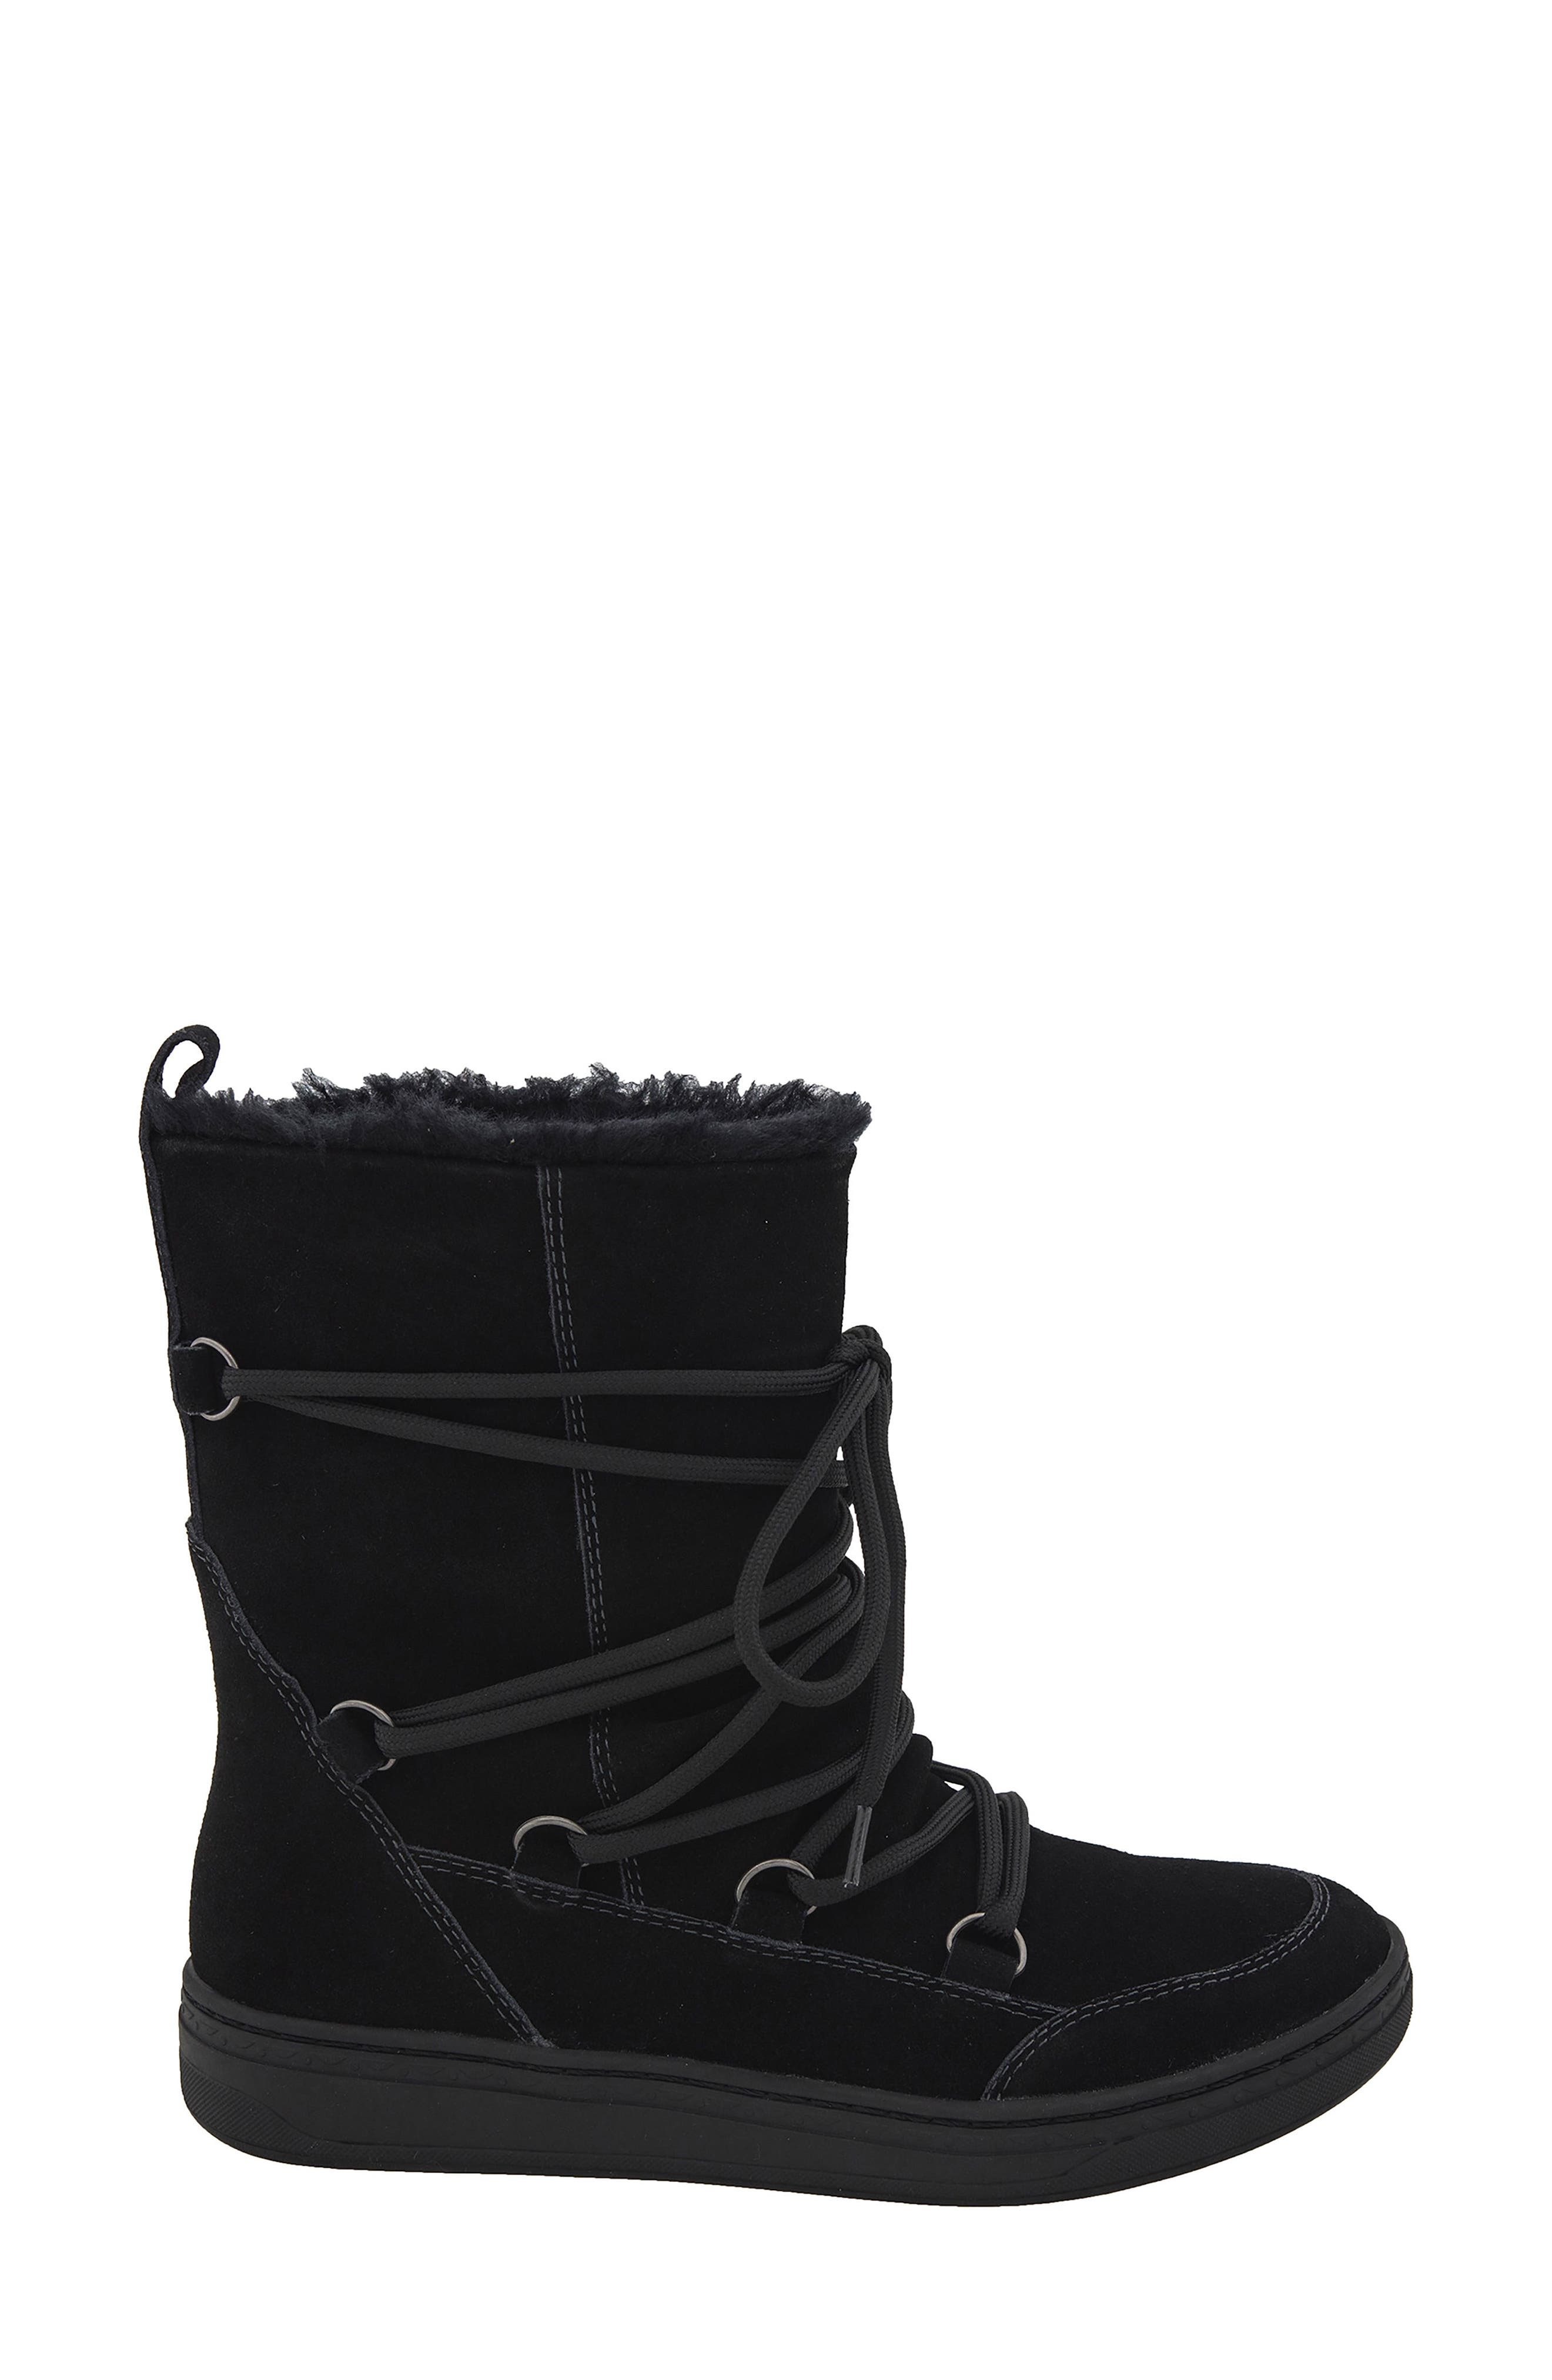 Zodiac Water Resistant Boot,                             Alternate thumbnail 3, color,                             BLACK SUEDE